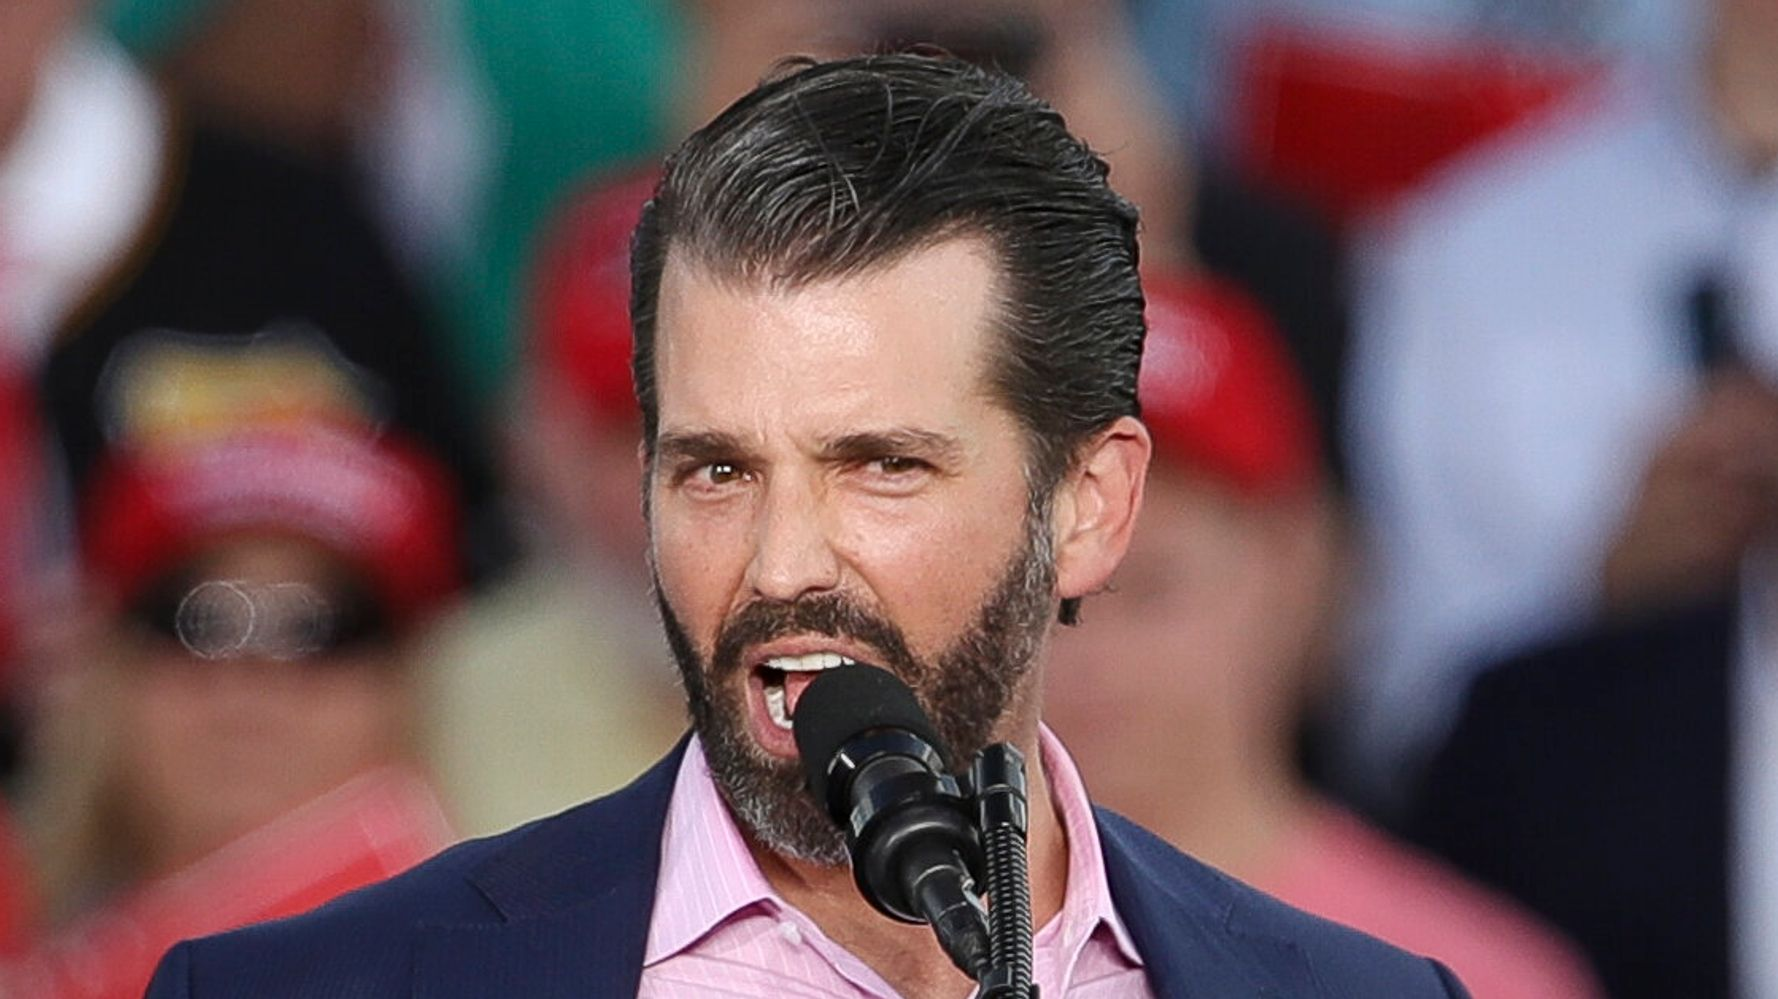 Comedians Troll Donald Trump Jr. With Bookstore Cover Swap Stunt